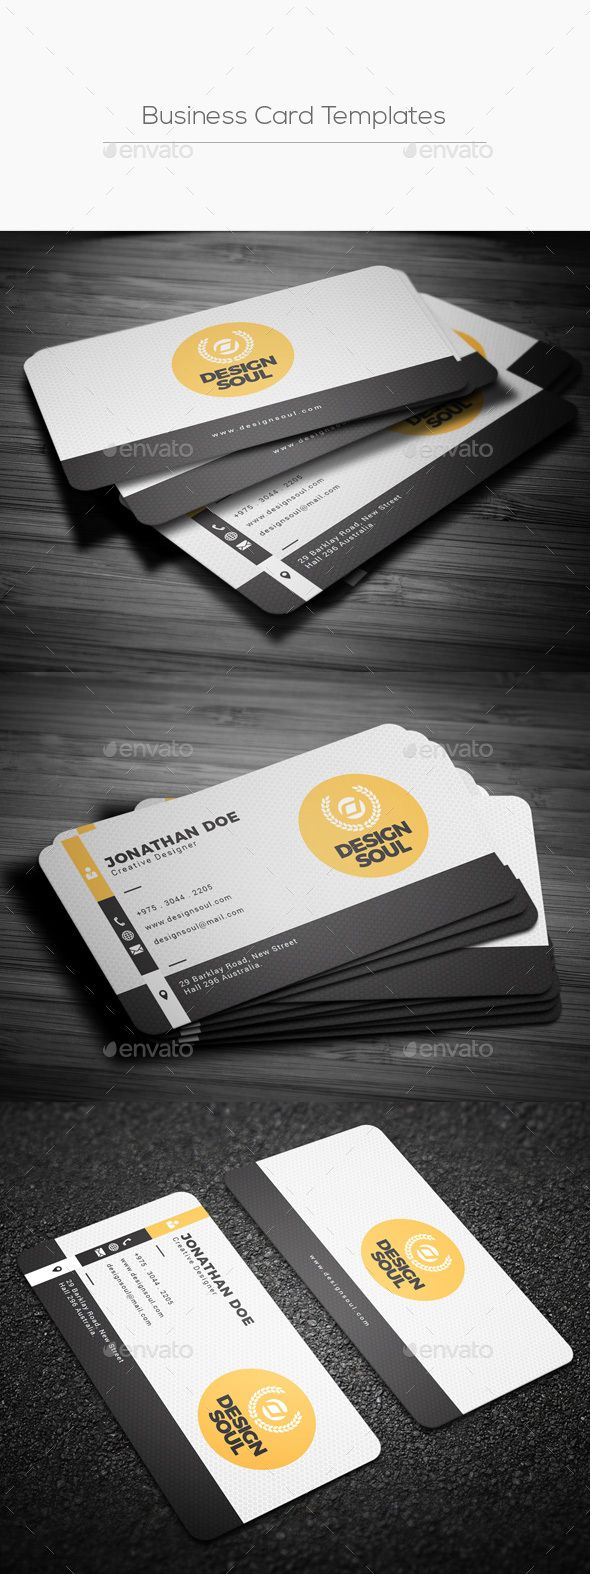 Business Card Business Card Photoshop Printing Business Cards Business Card Template Psd